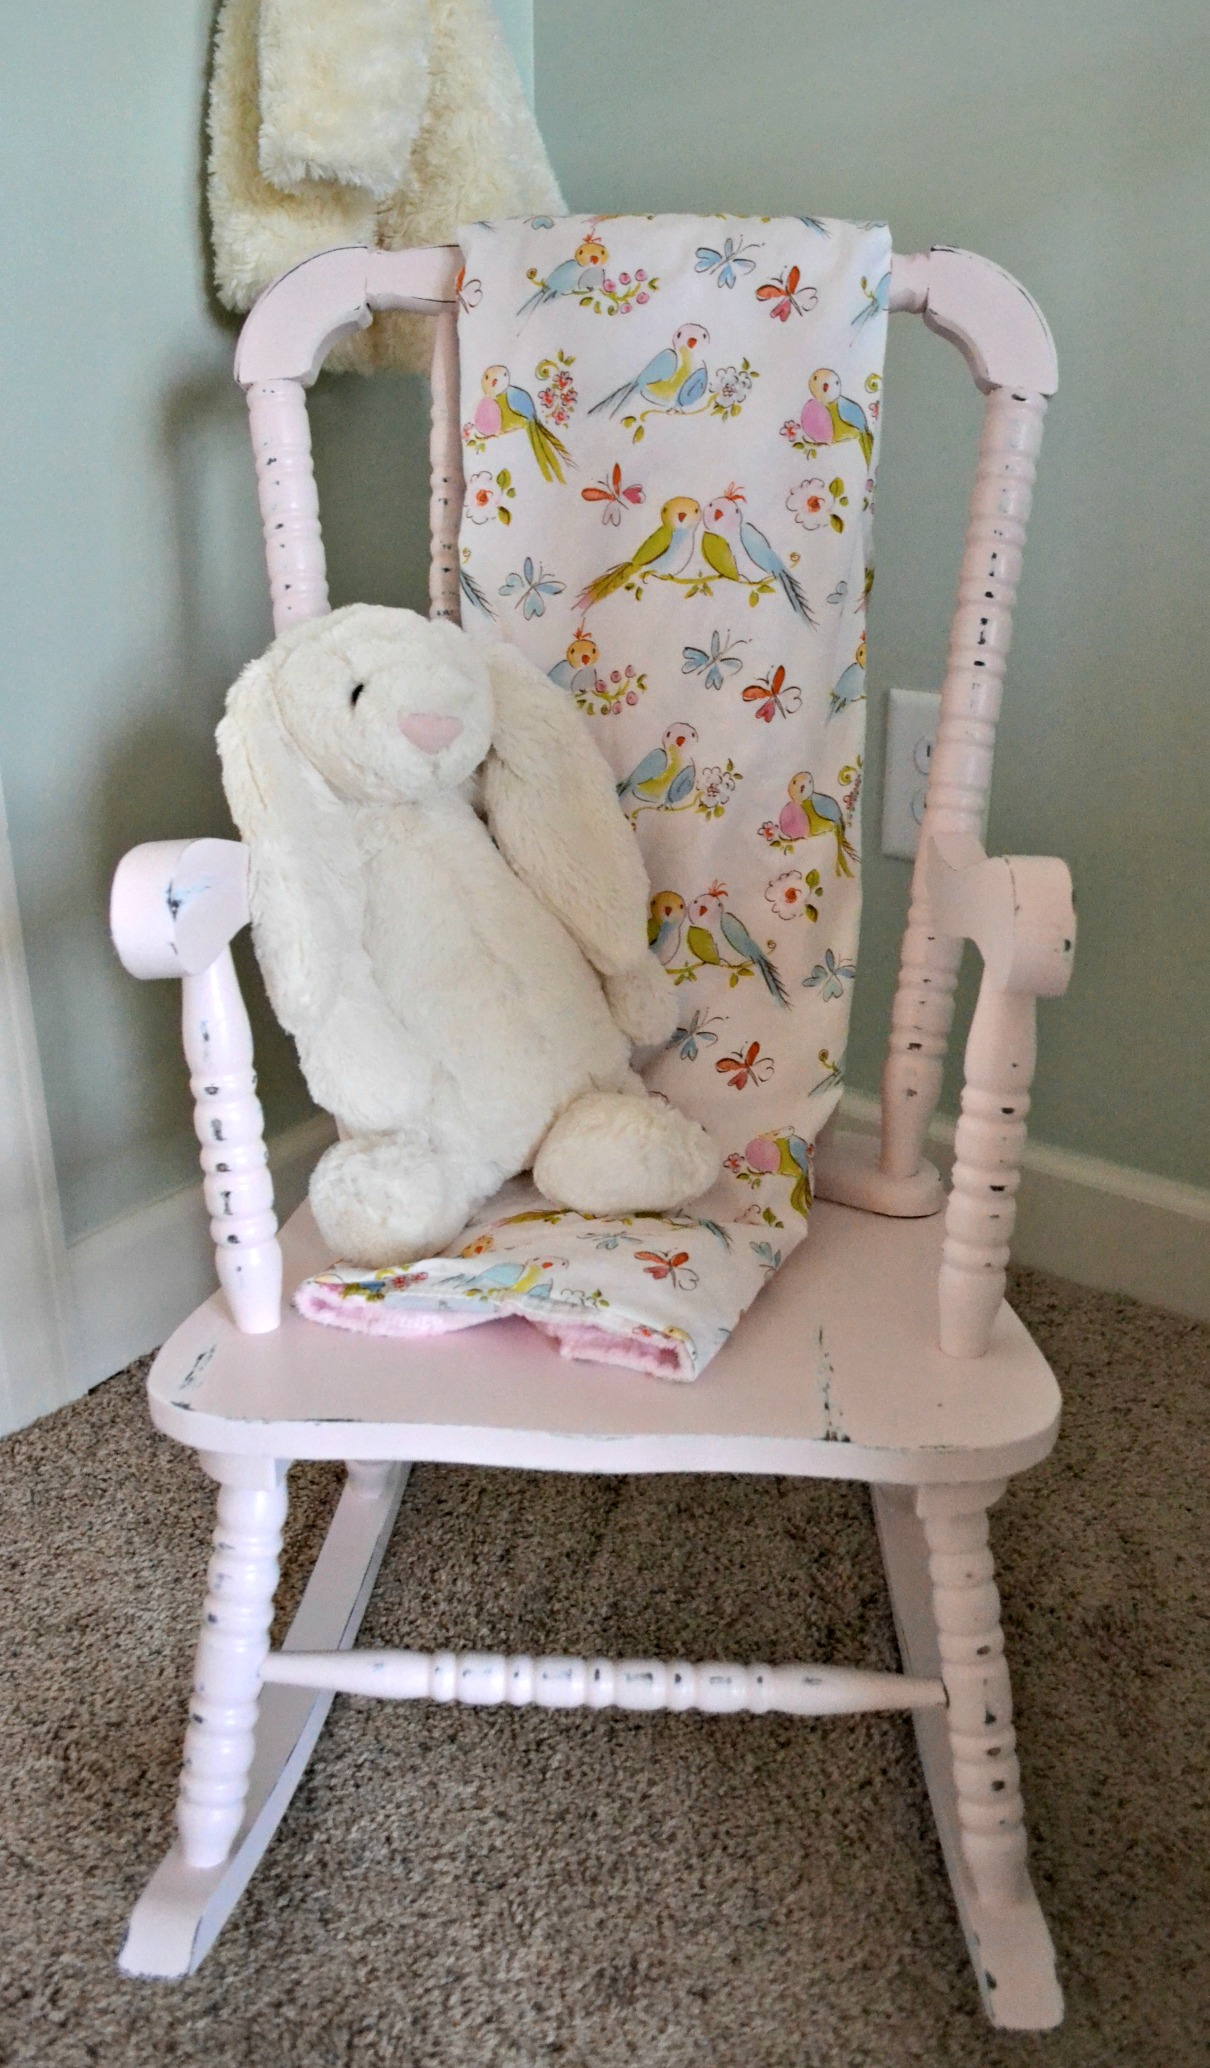 jenny lind rocking chair where to rent covers and sashes kate s nursery reveal the miller lite crib bedding curtains carousel designs changing table small renzi tate furnishings bunny in jelly cat